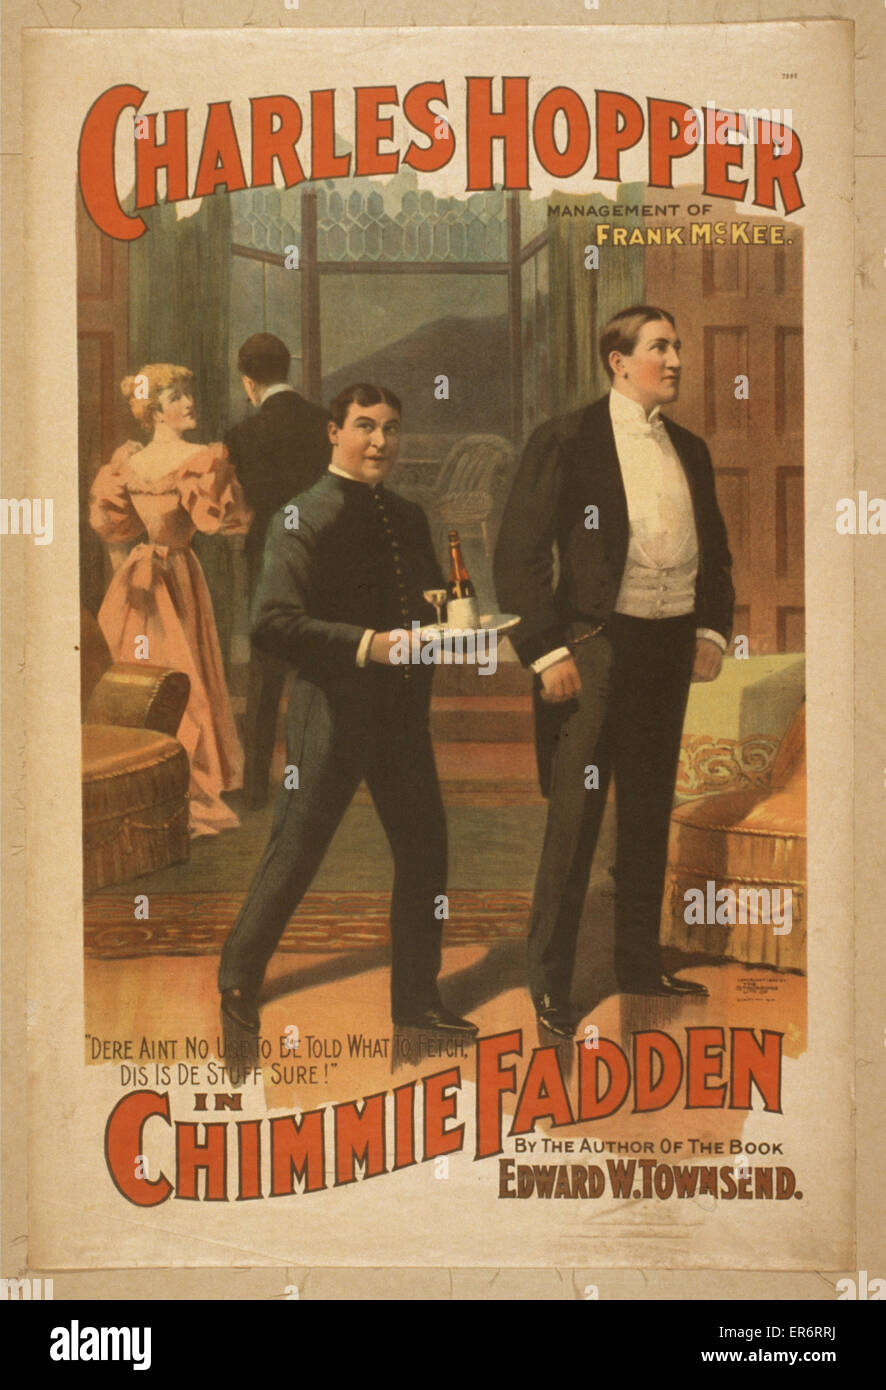 Charles Hopper in Chimmie Fadden by the author of the book, Edward W. Townsend. Date c1896. - Stock Image